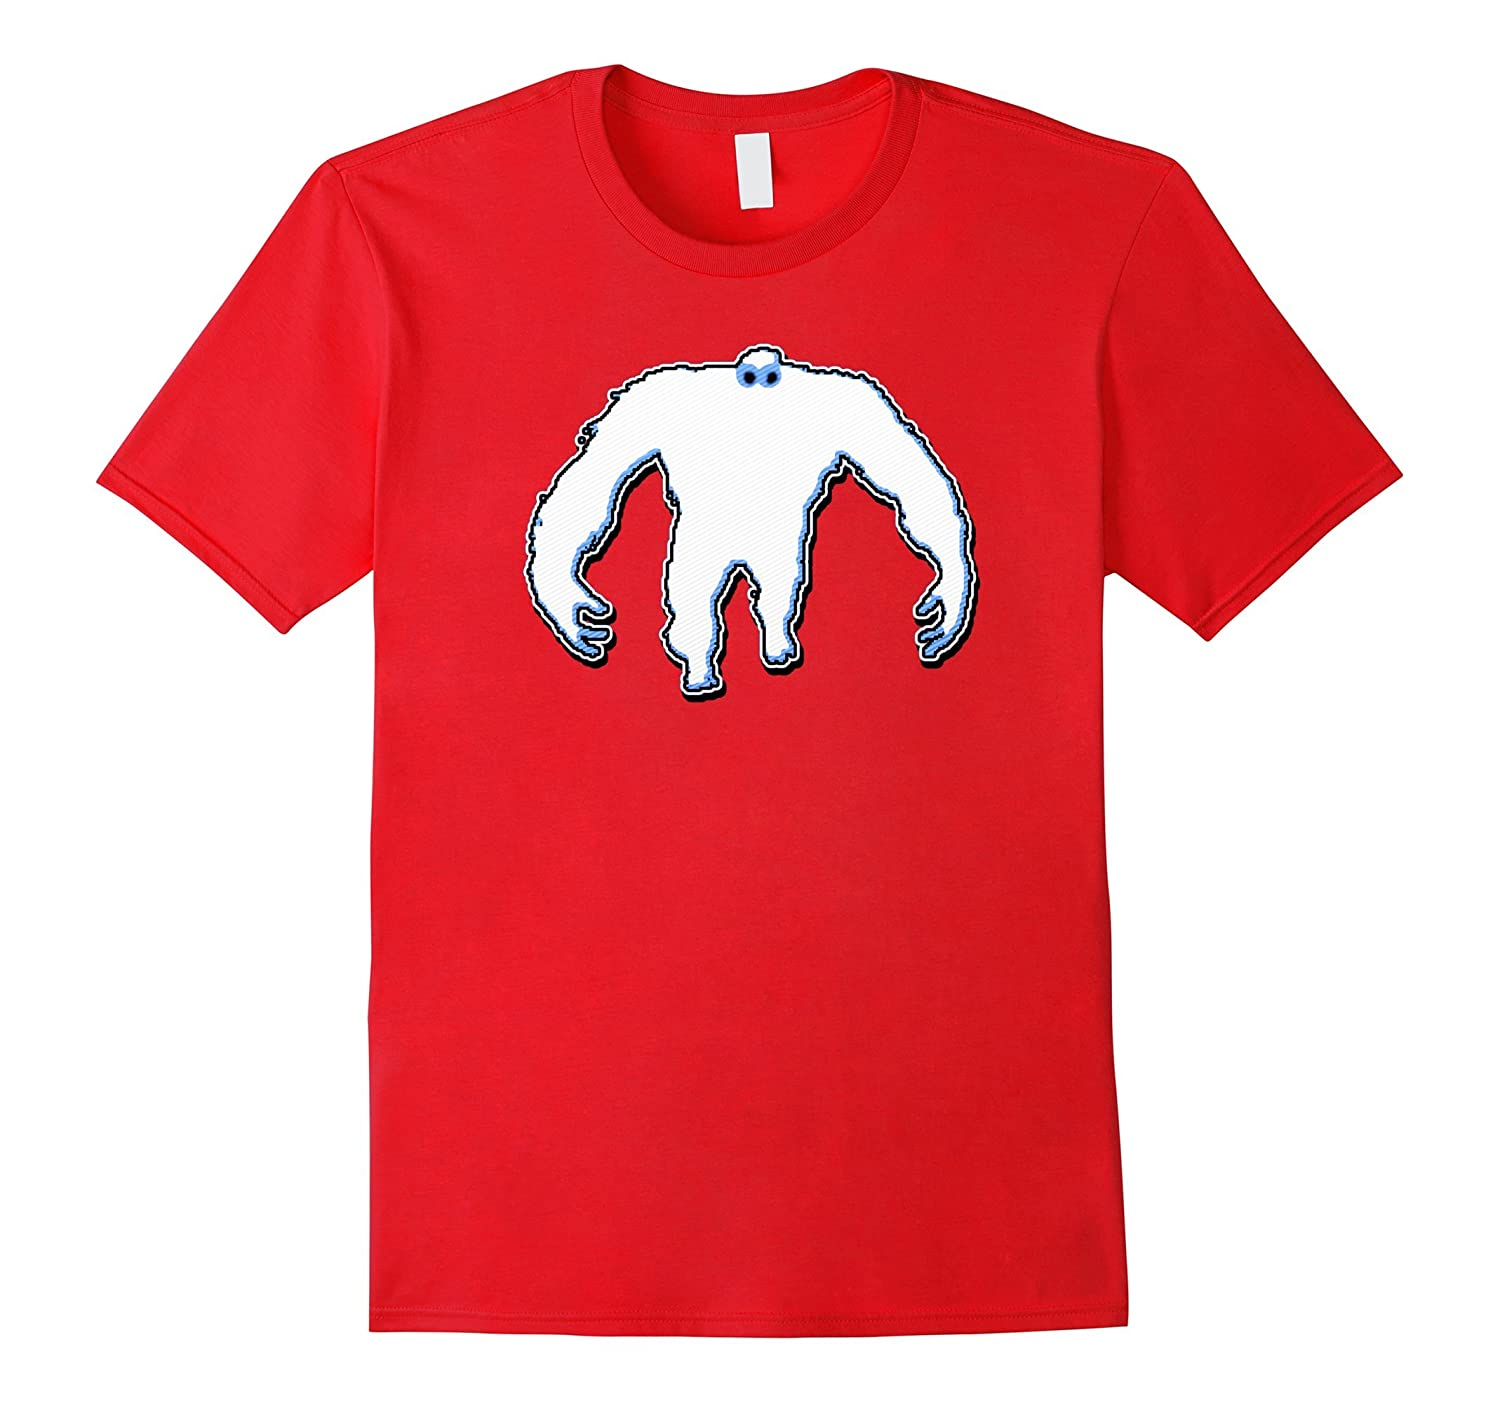 Abominable Snowman Yeti Squatch Paranormal Sasquatch T-Shirt-RT